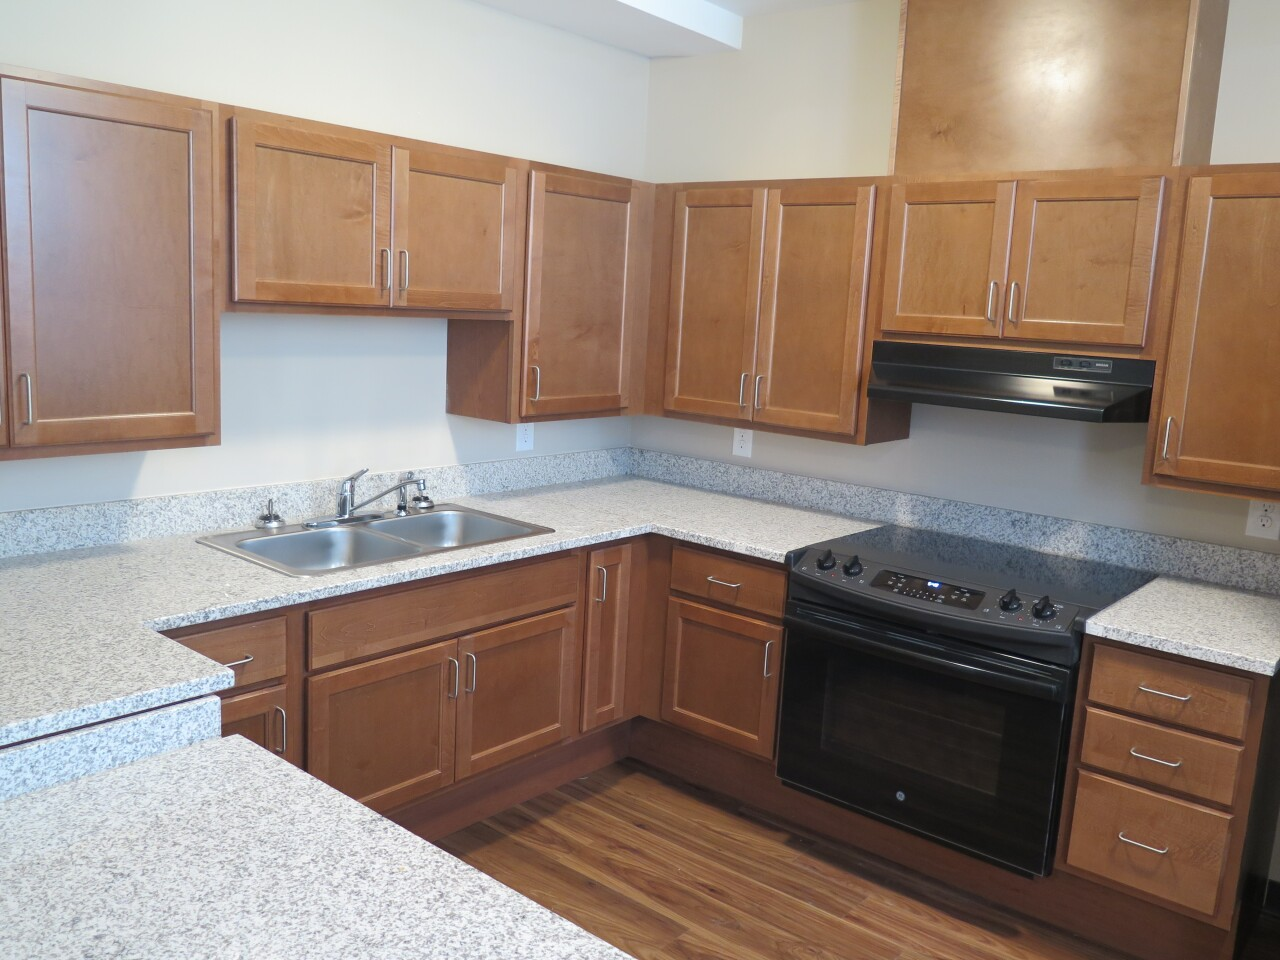 This photo shows a kitchen in one of the Logan Towers apartments. The kitchen has solid-surface countertops, a stainless steel sink and a black stove.